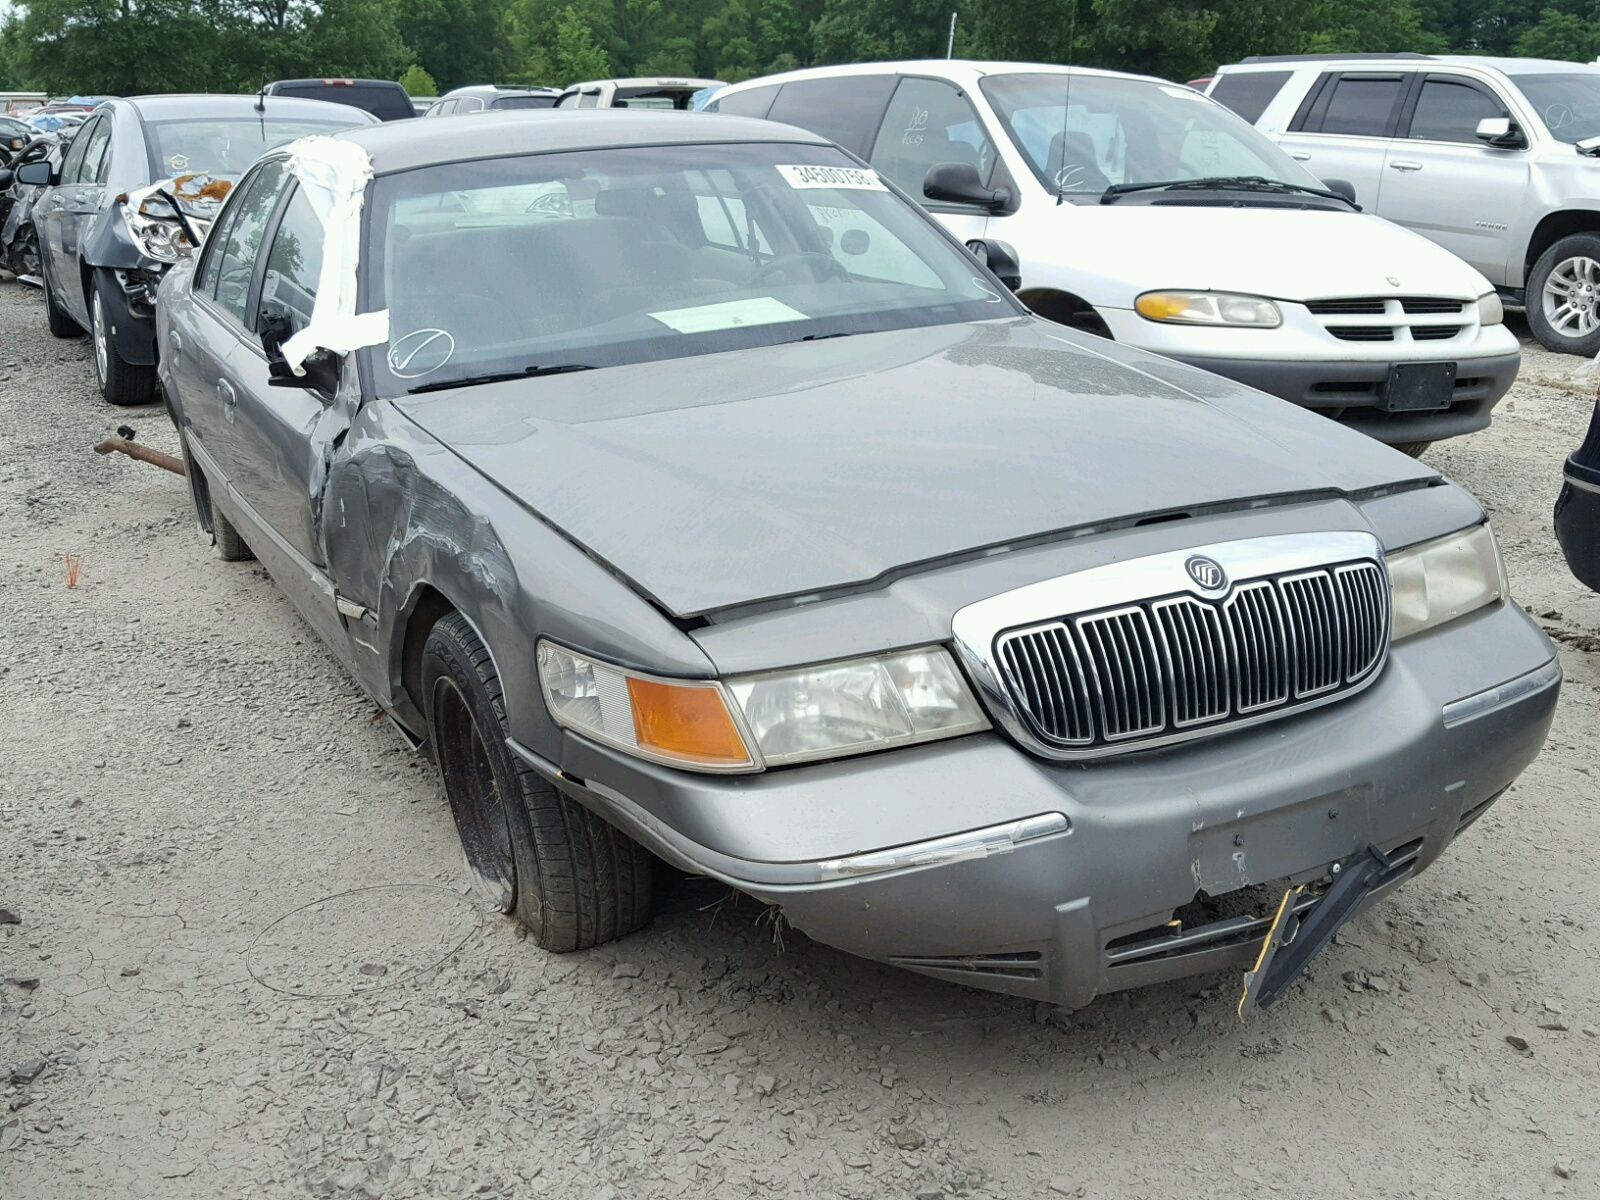 Salvage 2000 Mercury GRAND MARQ for sale